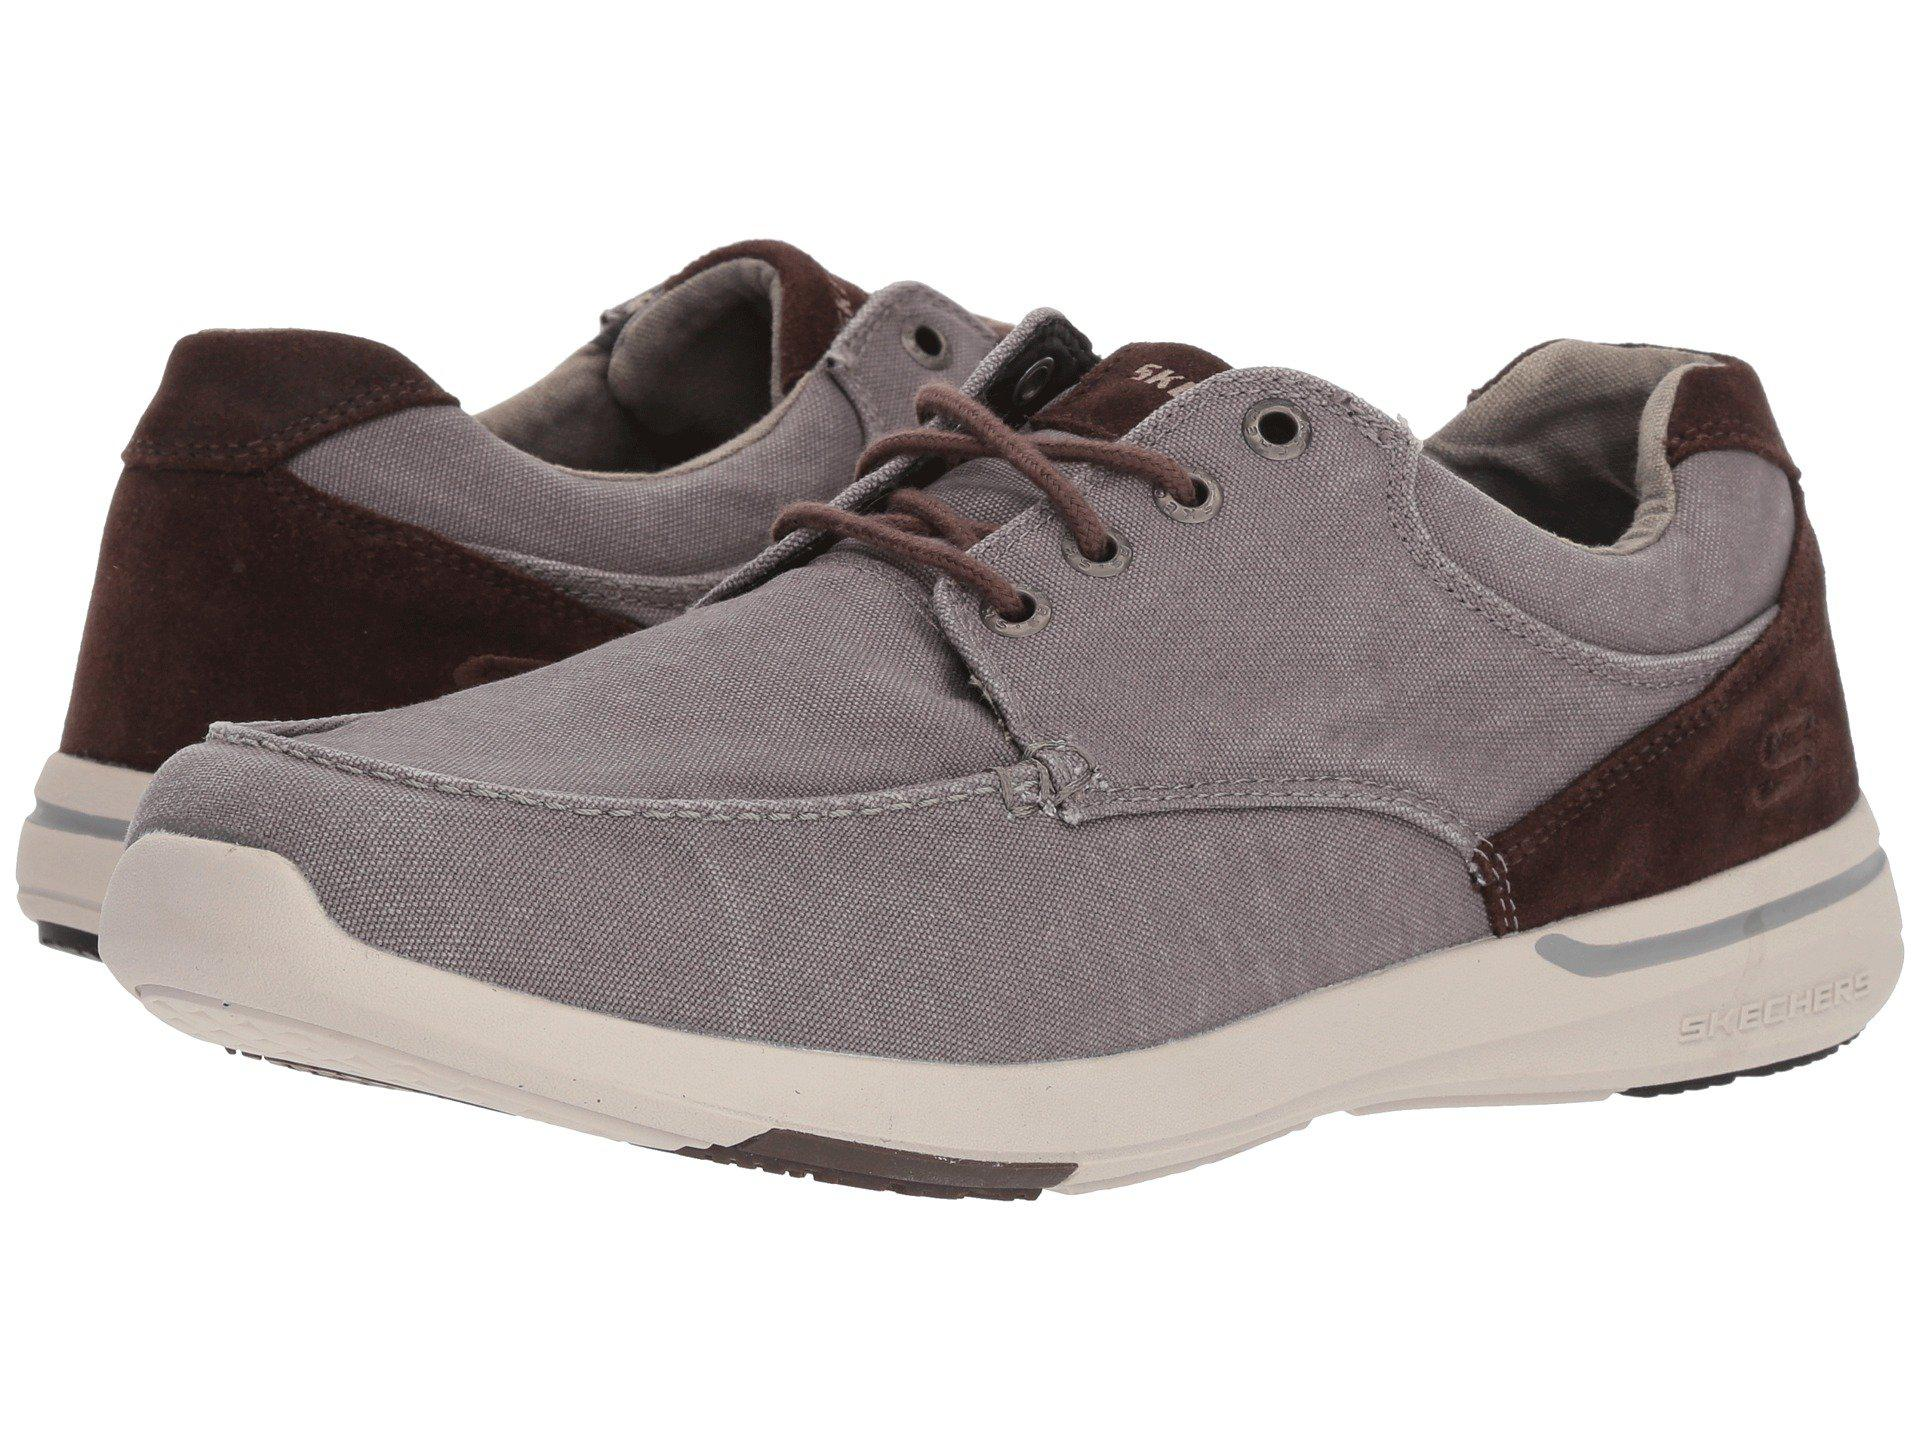 c25a5d0d91c6 Lyst - Skechers Relaxed Fit®  Elent - Arven in Gray for Men